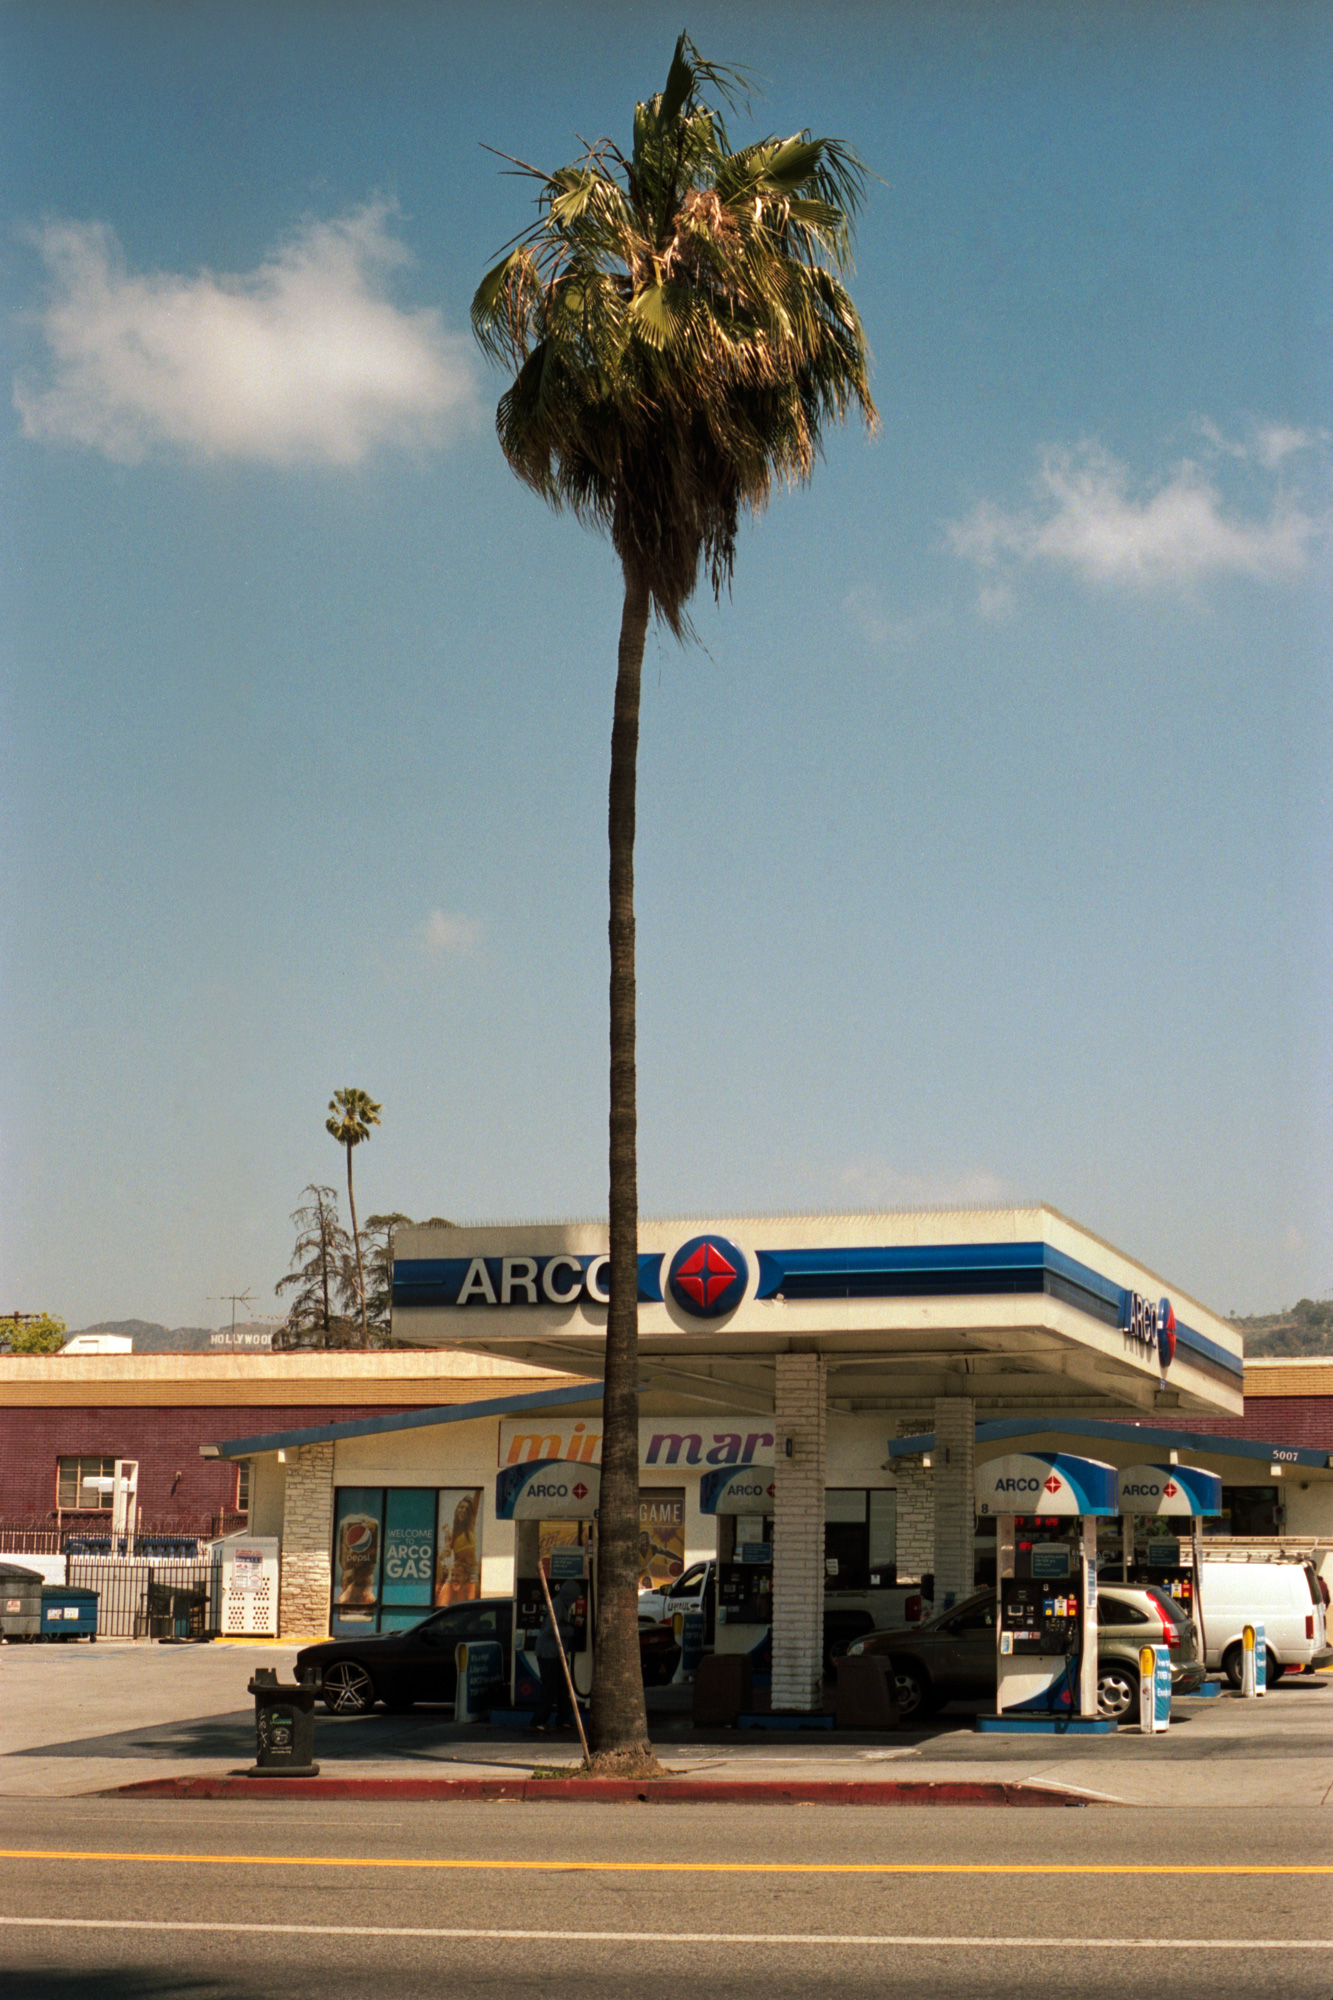 Arco on Sunset Blvd, Omg Your English, Photography by Ioannis Koussertari